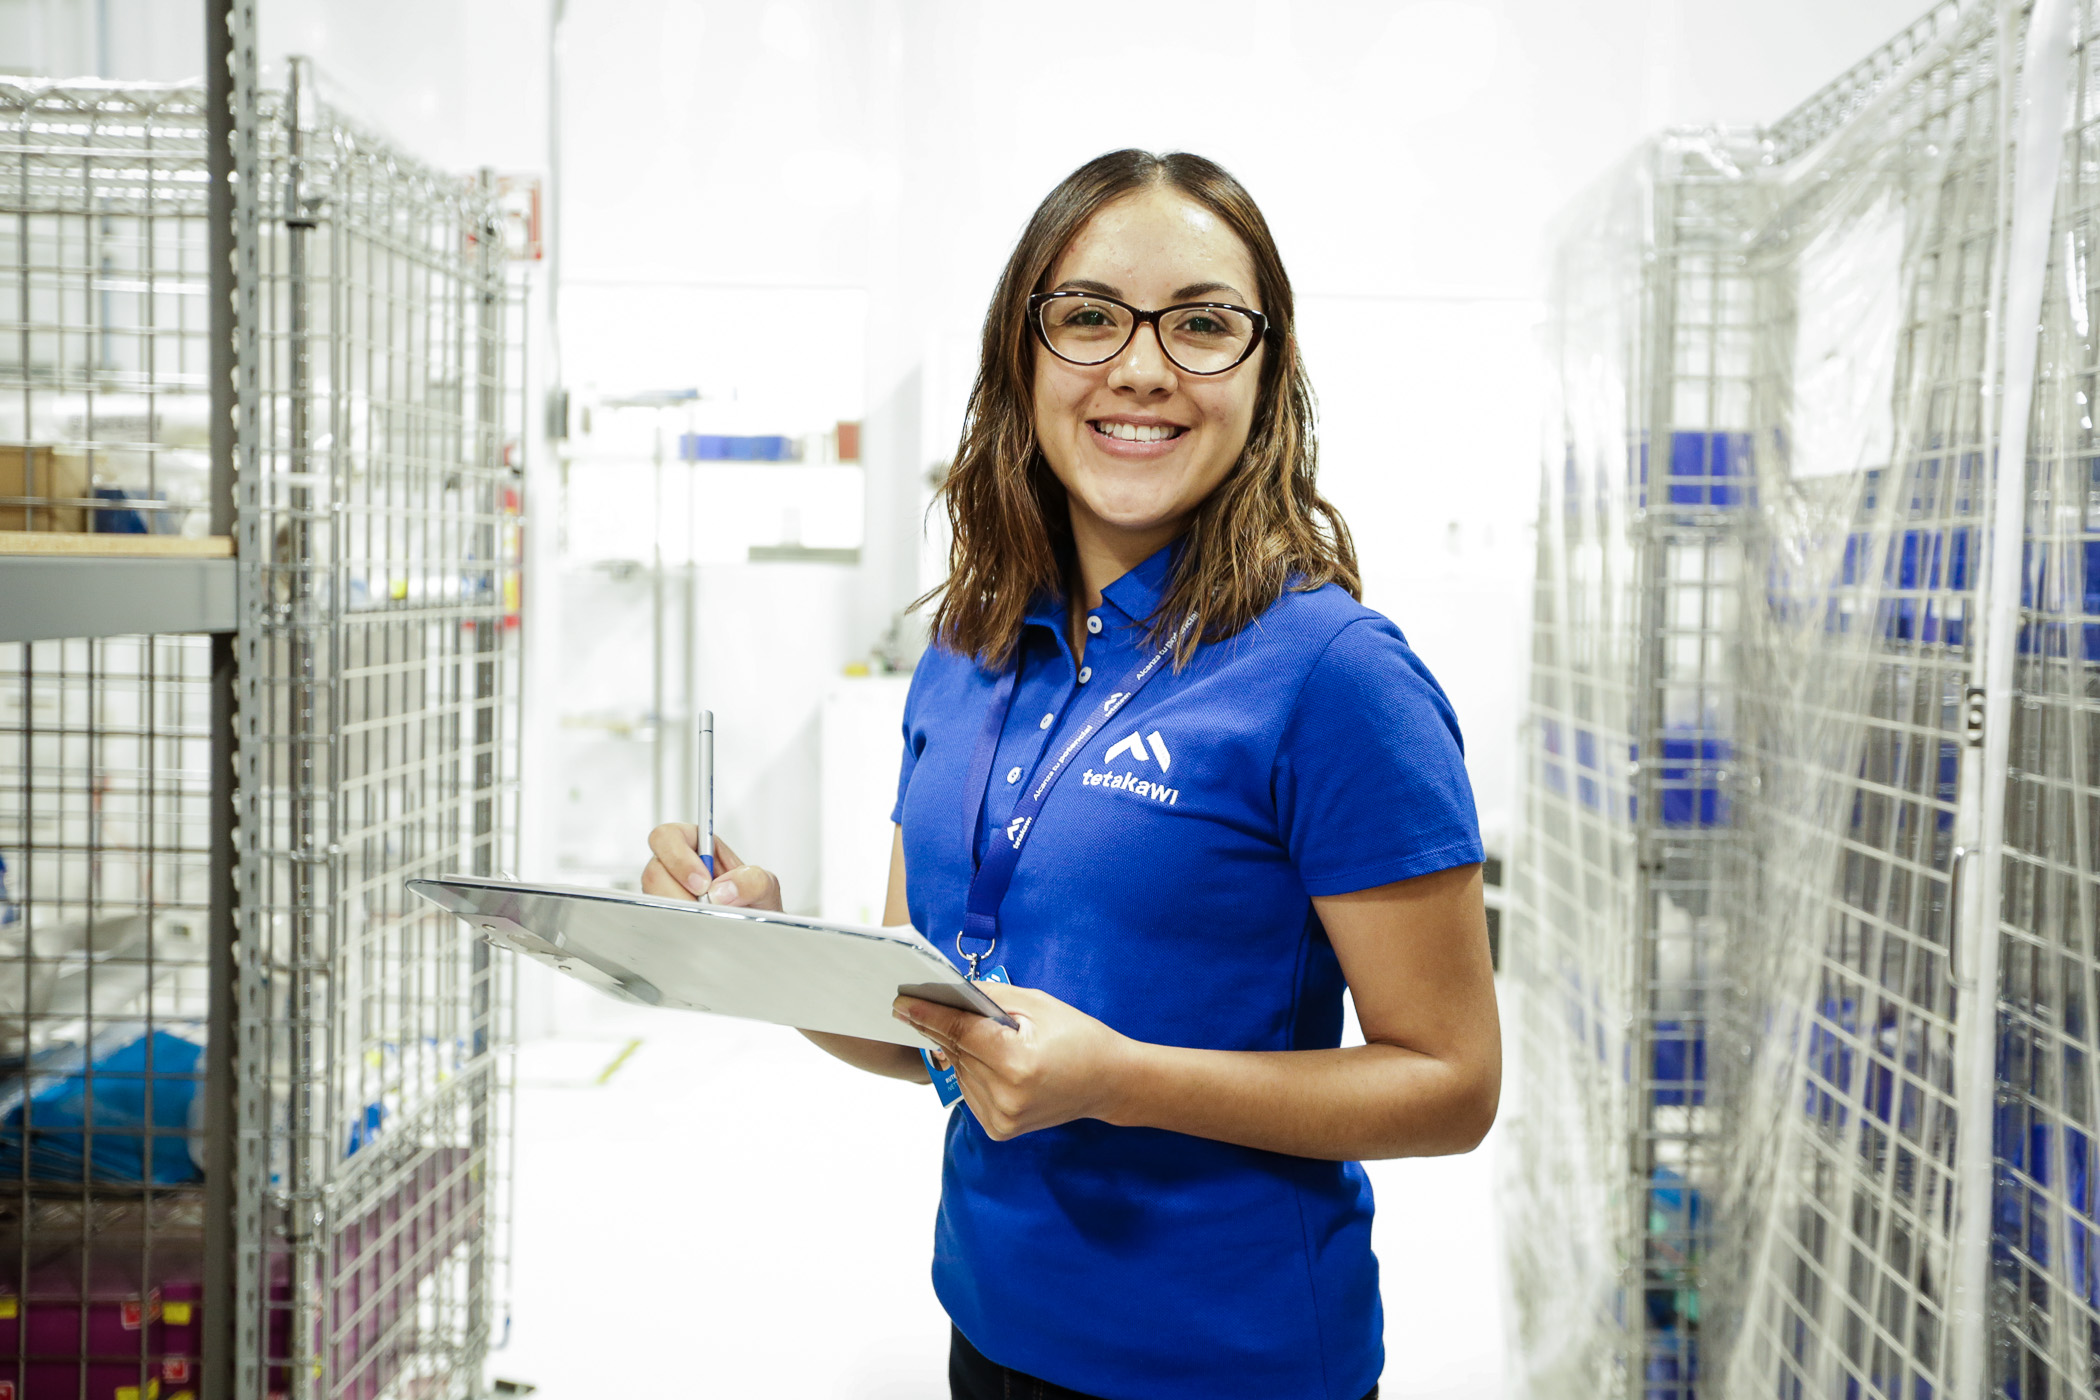 Employee of Shelter Company in Mexico